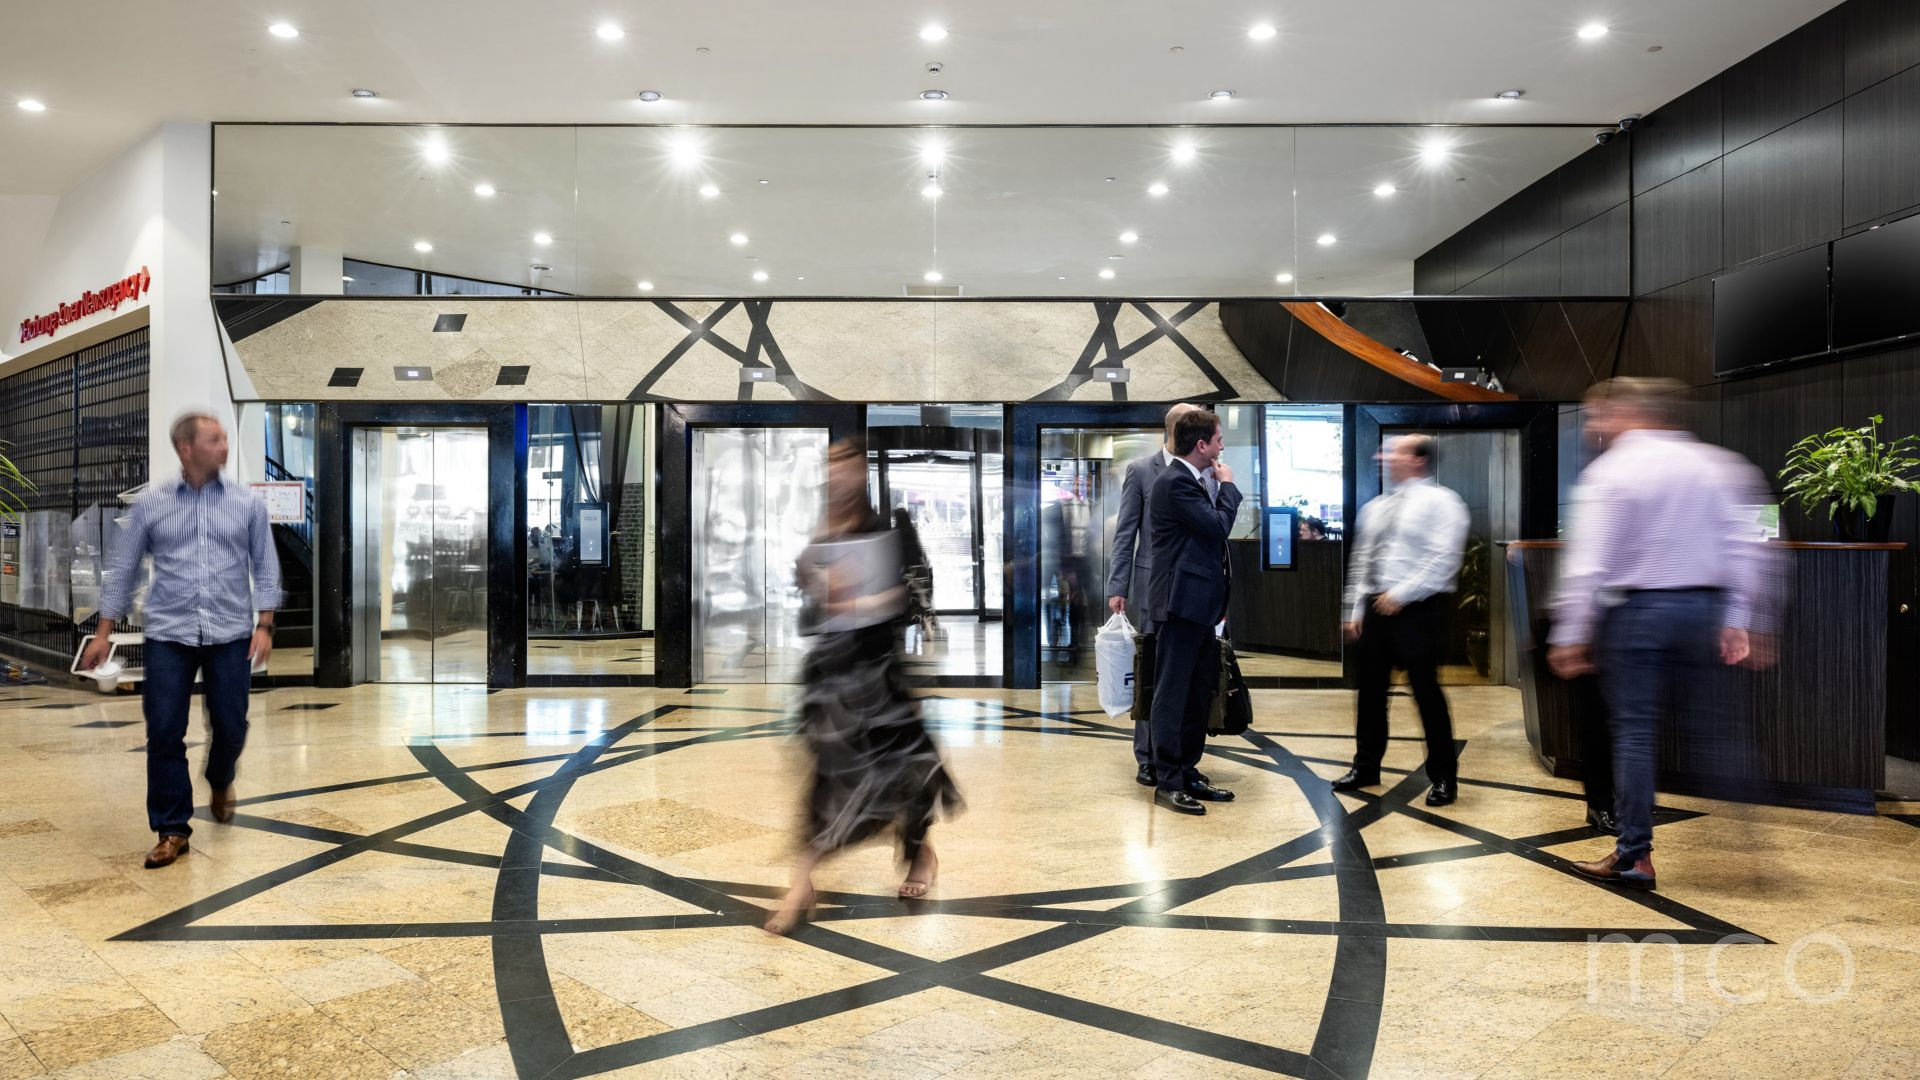 Find everything your business could need at Exchange Tower!